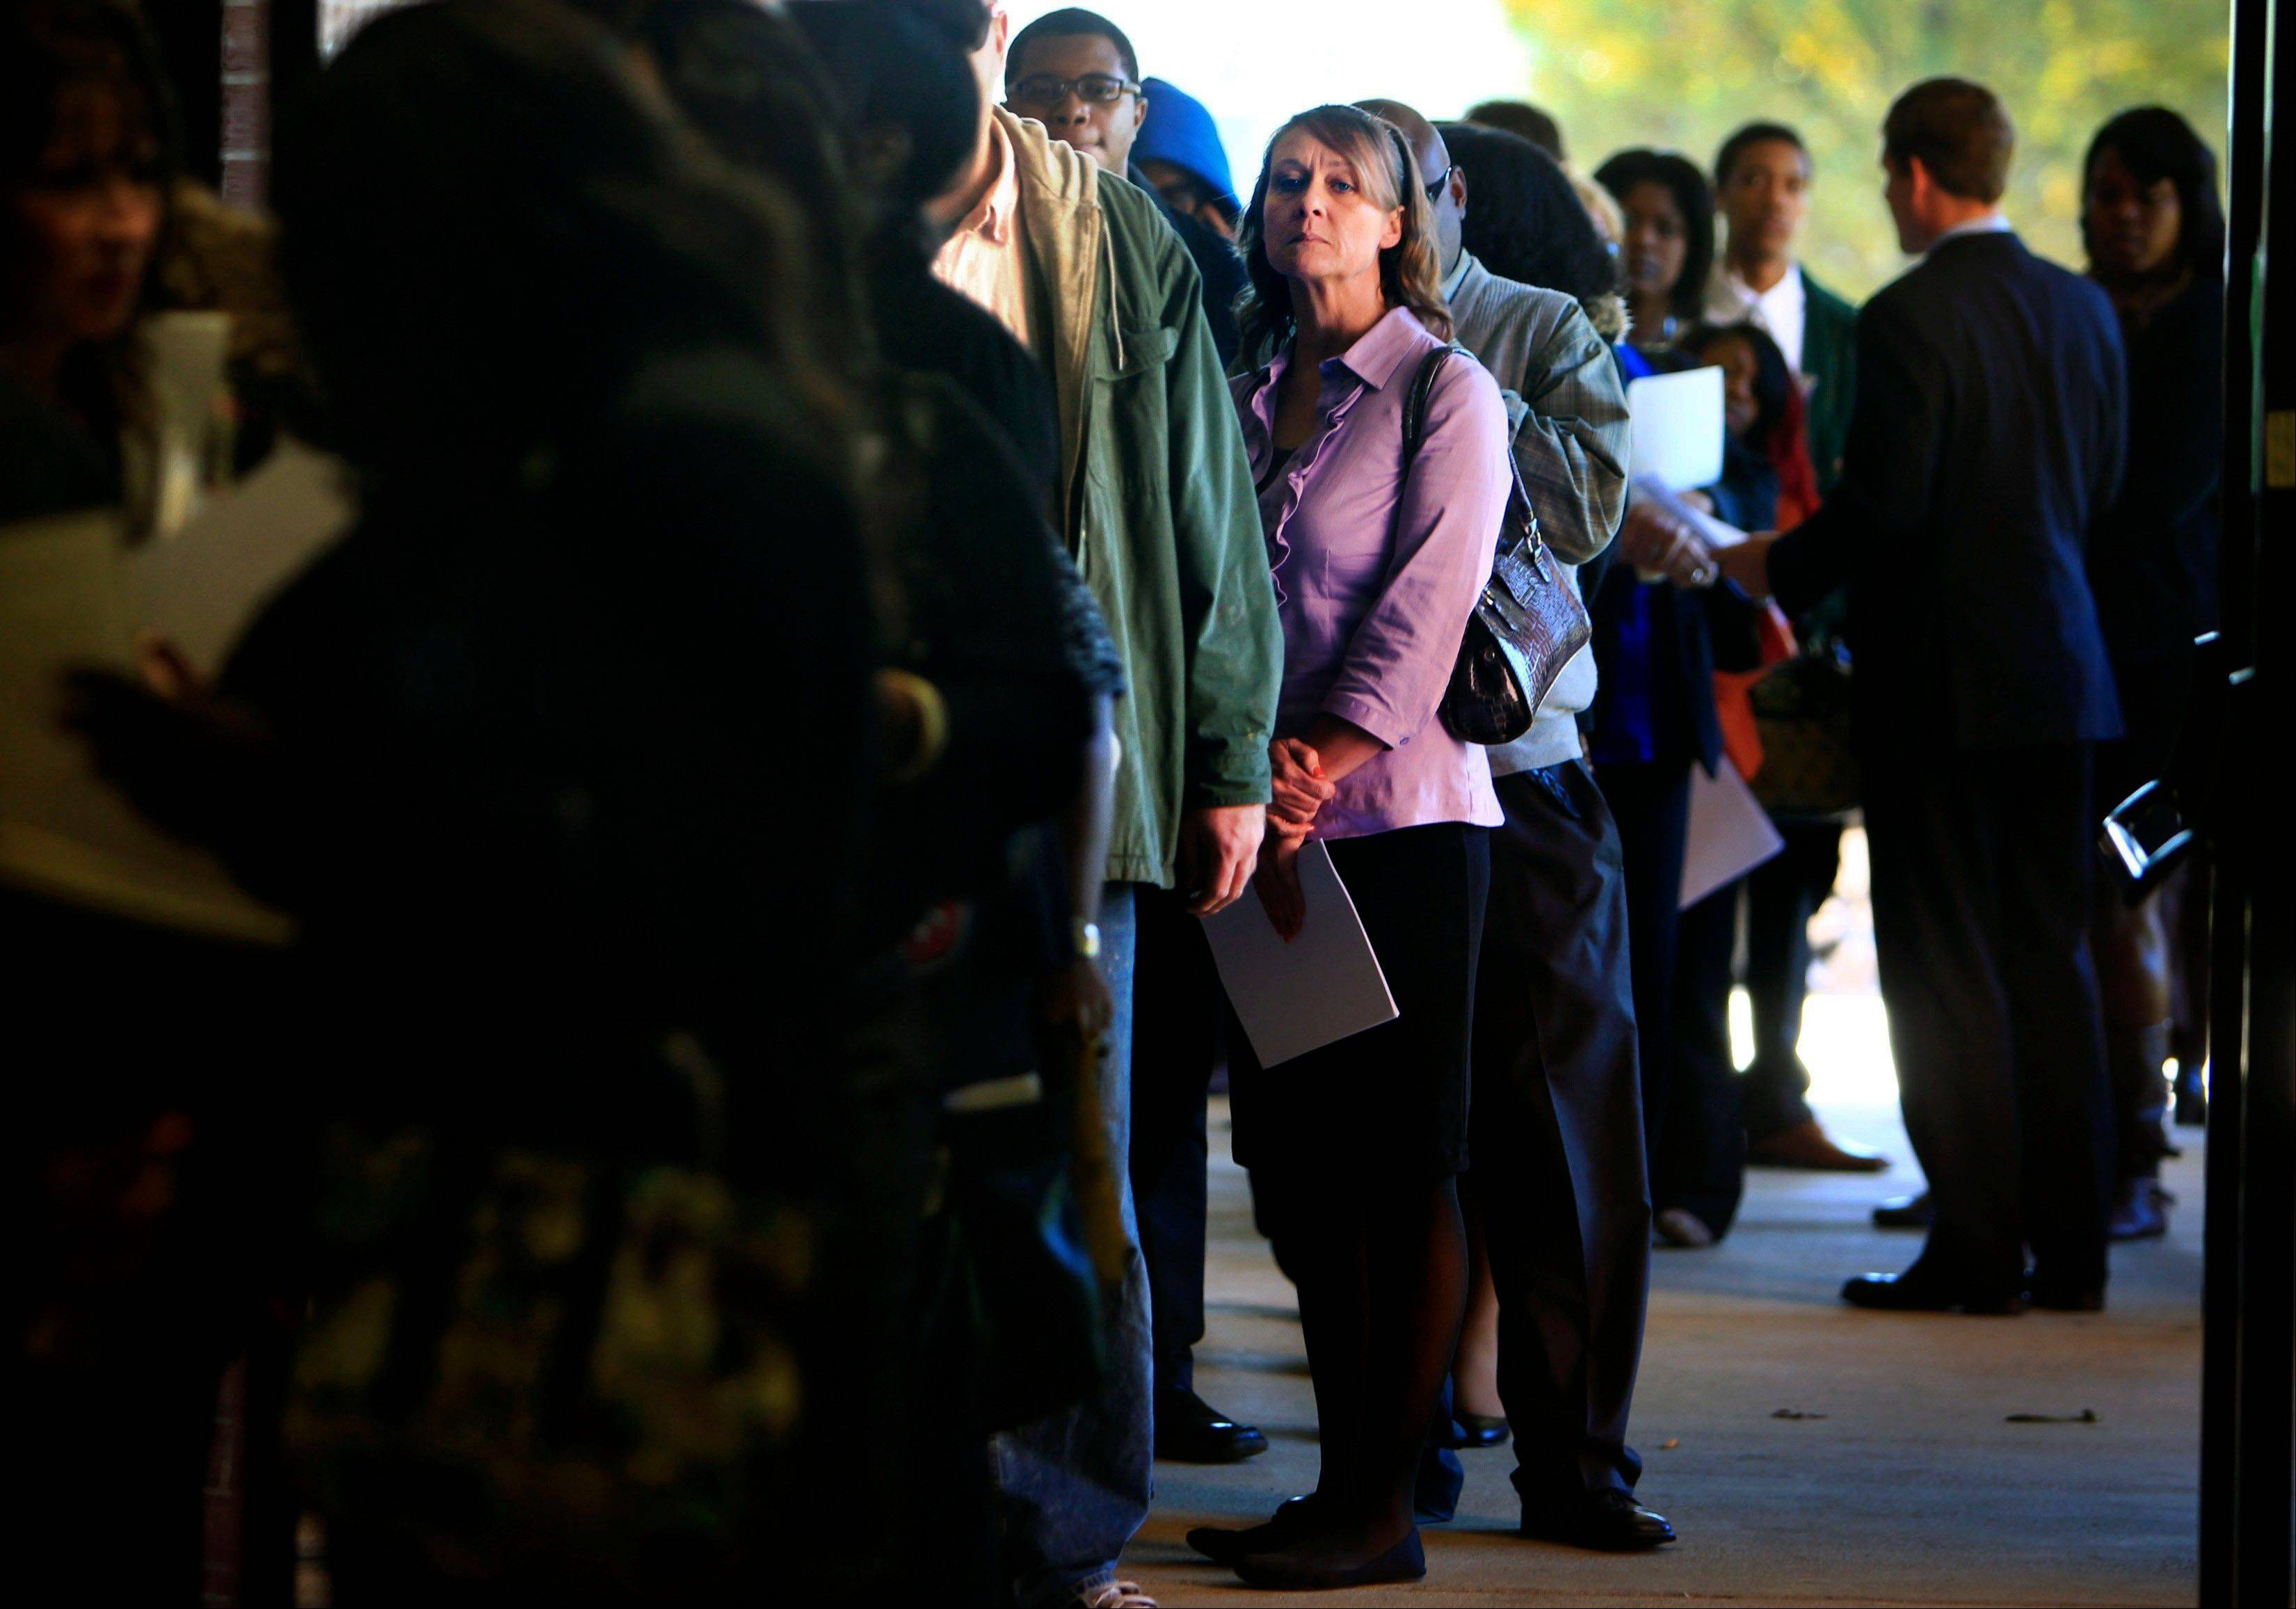 Jona Caldwell joins a long line of job seekers outside the Ferguson Community Center in Cordova, Tenn.